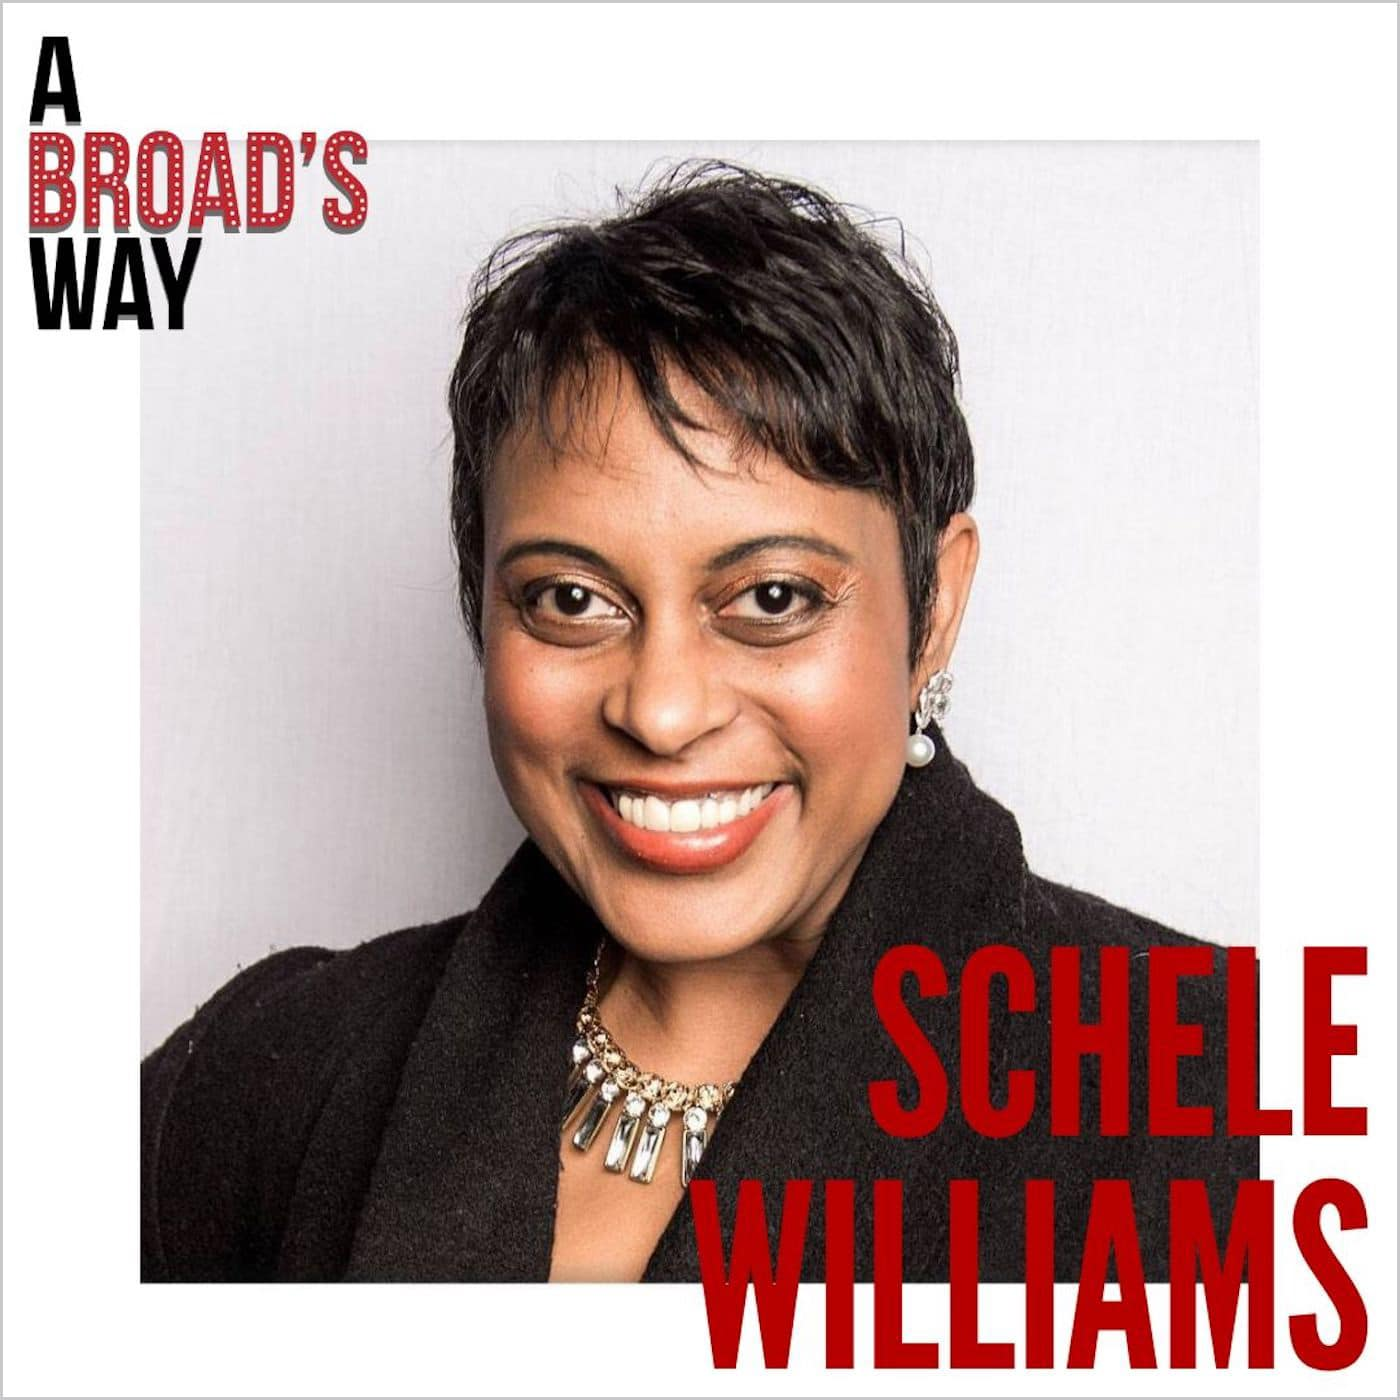 A Broad's Way Episode 13 Schele Williams